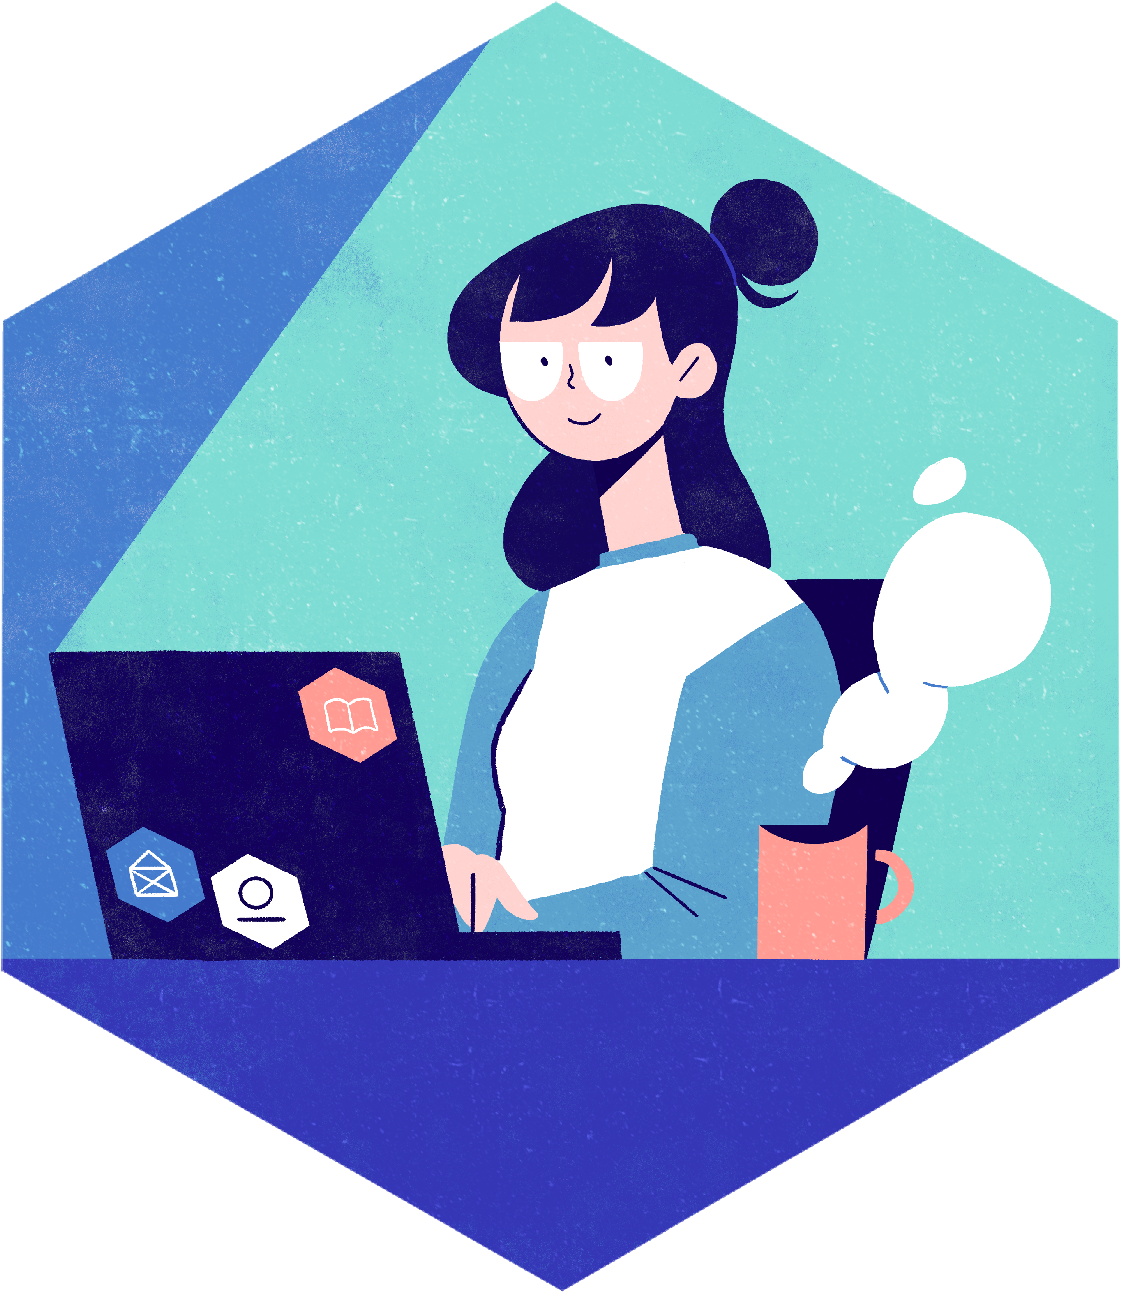 Person at their laptop with a steaming cup. Lydia Hill Illustration. All rights reserved.